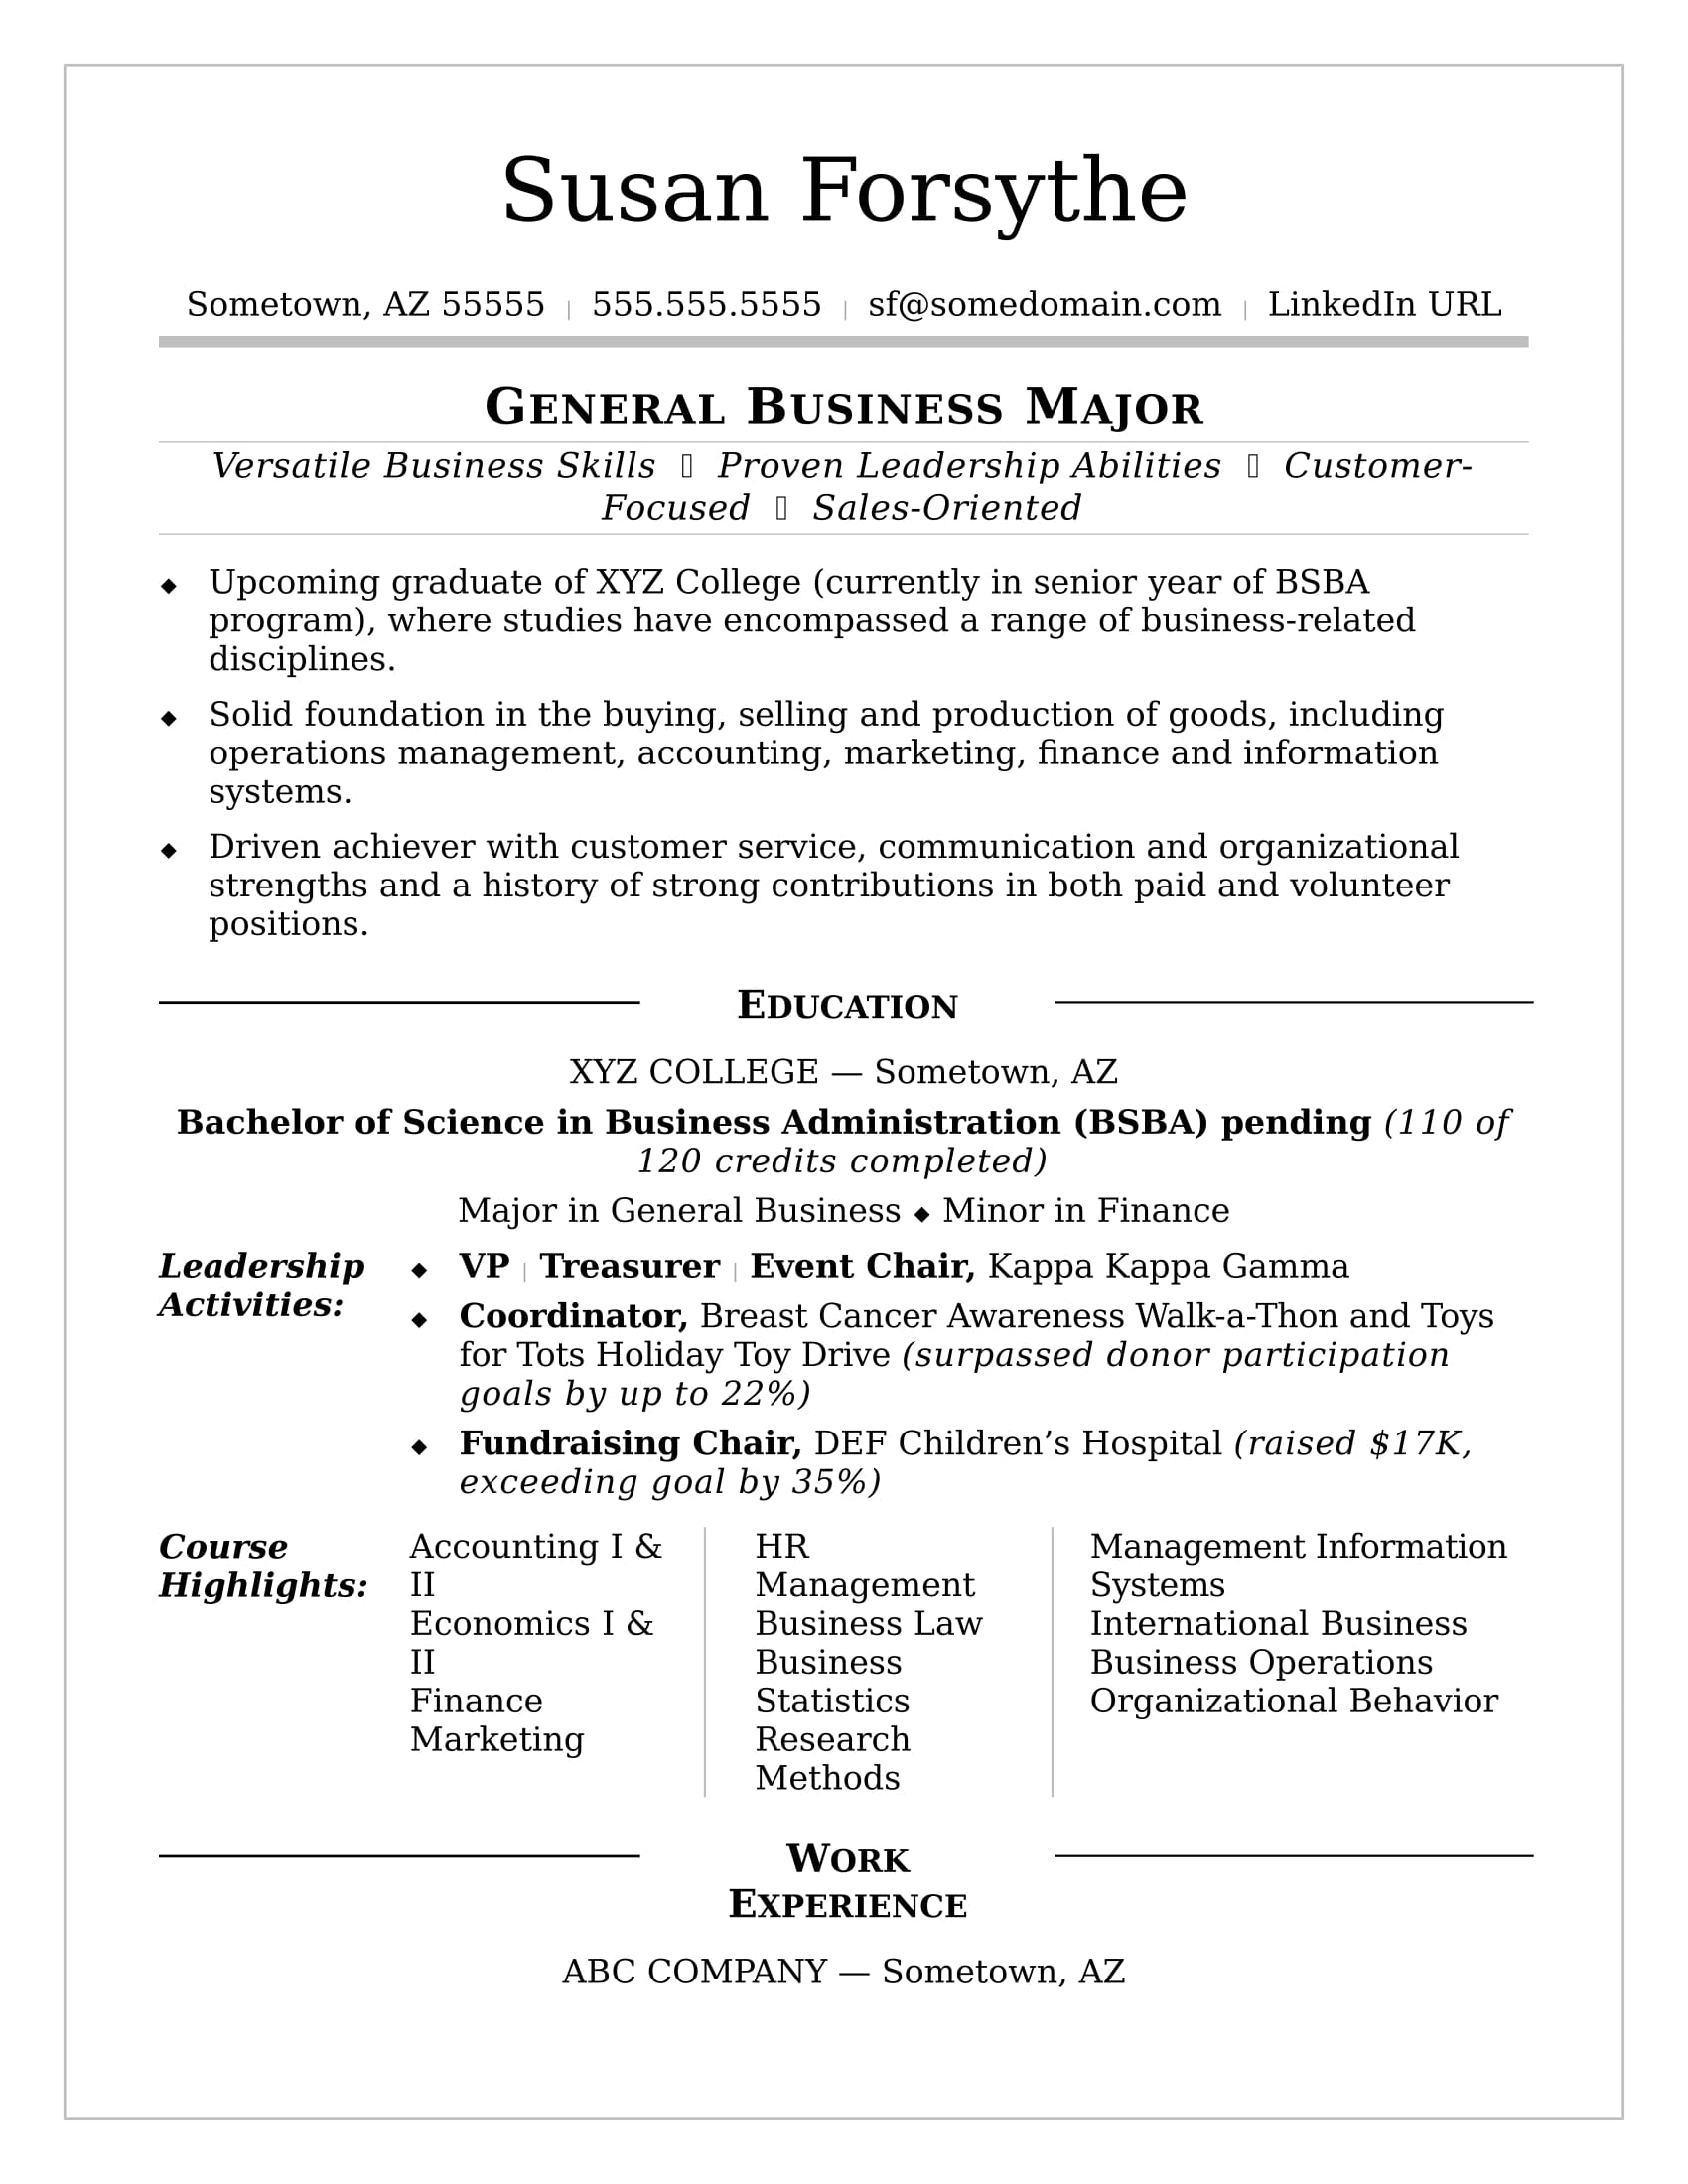 resume Student Resume Examples college resume sample monster com sample